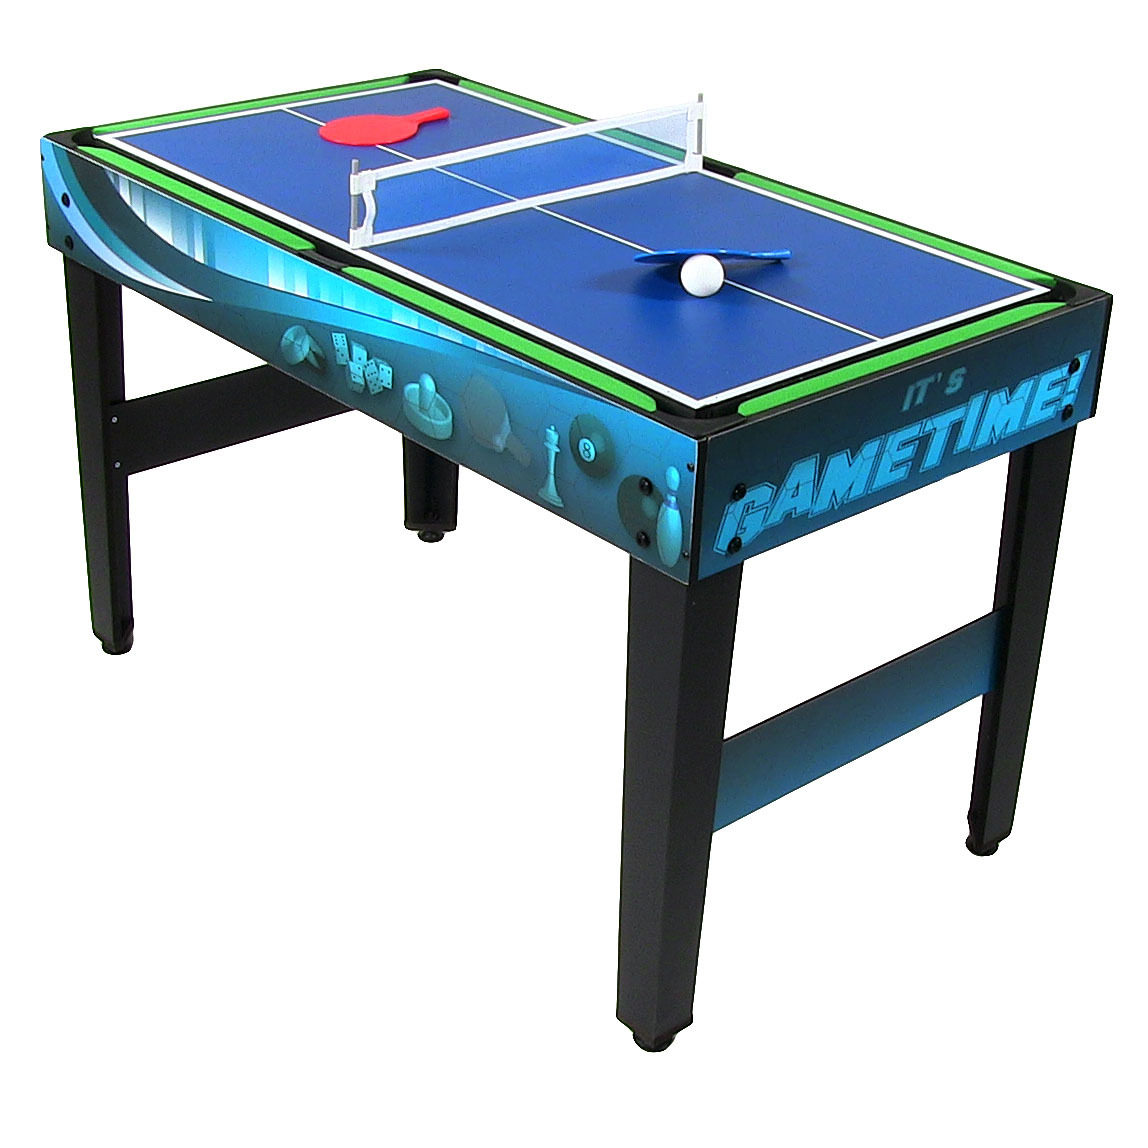 sunnydaze multi game 10 in 1 kids game table billiards